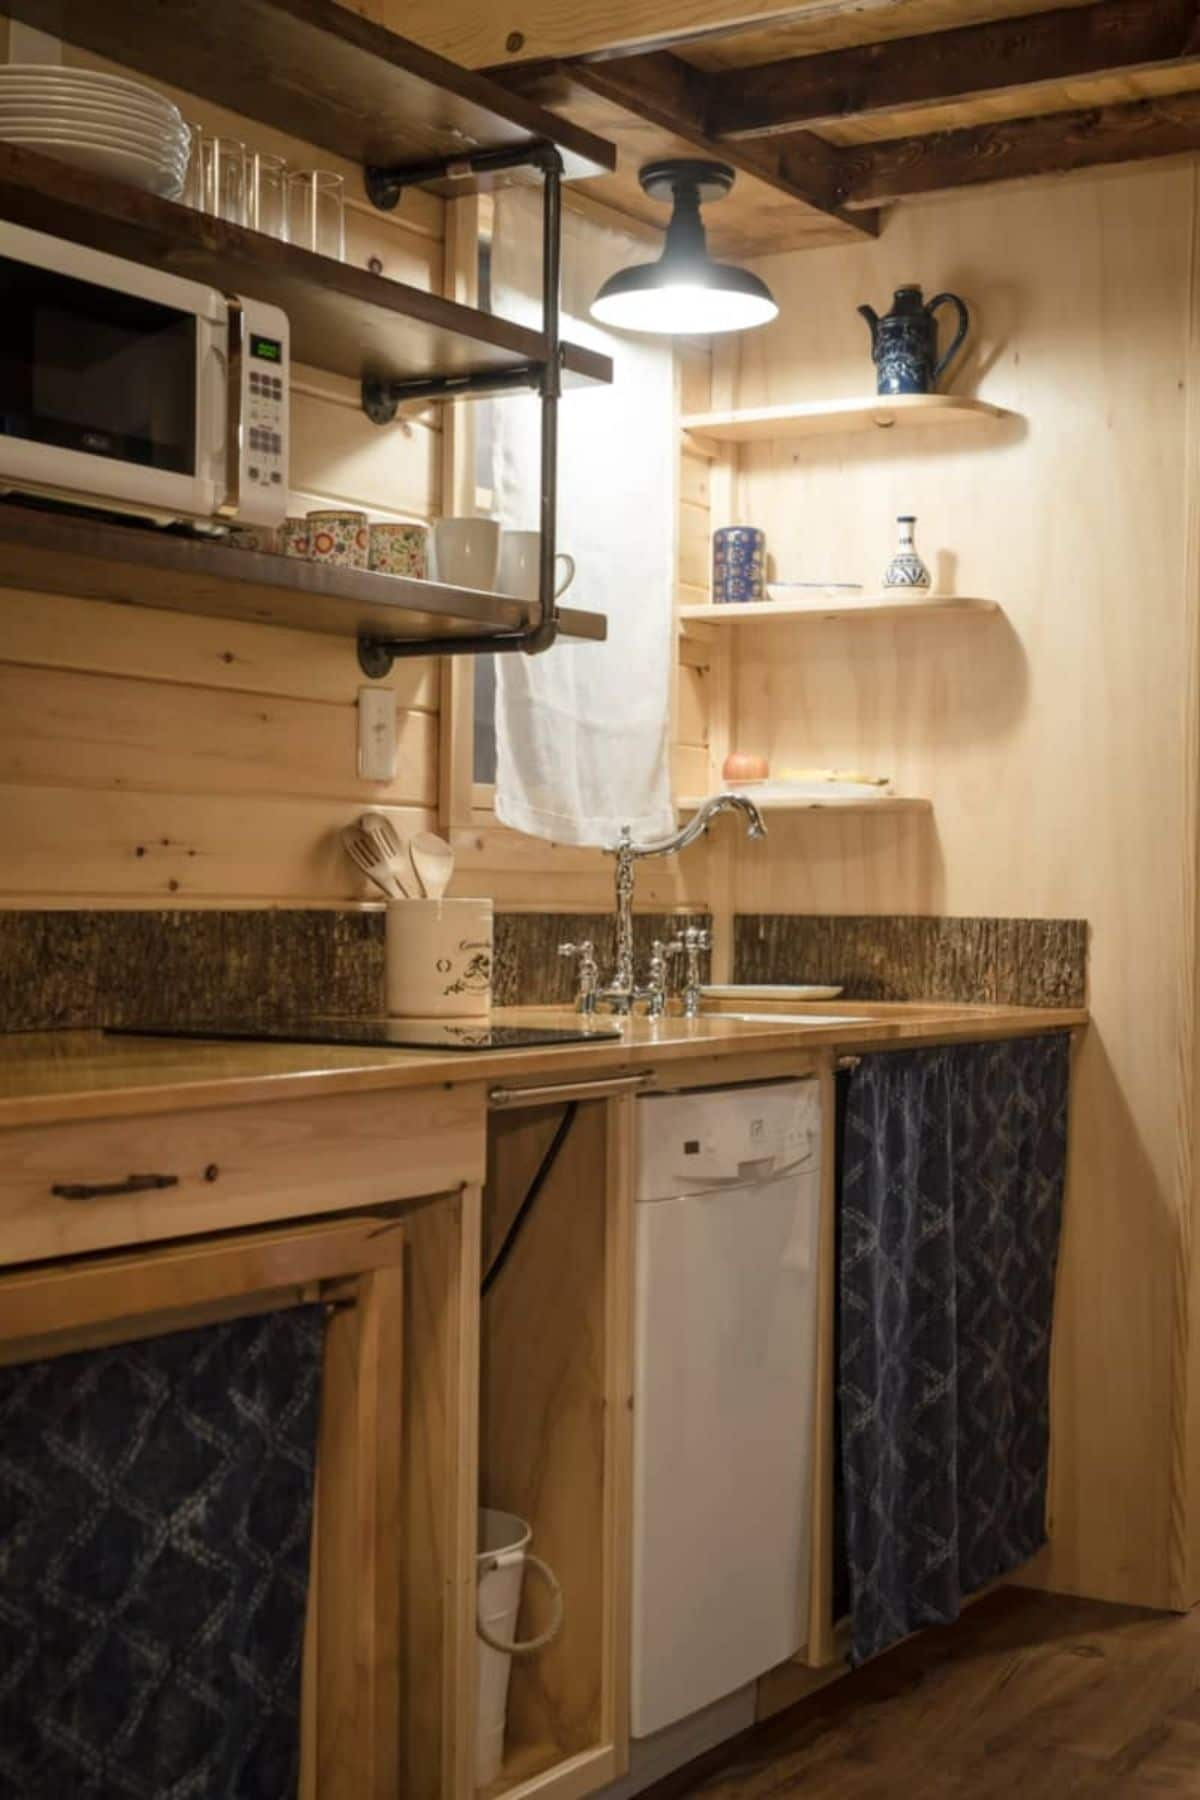 Kitchen with butcher block countertops with open shelving along light wood walls